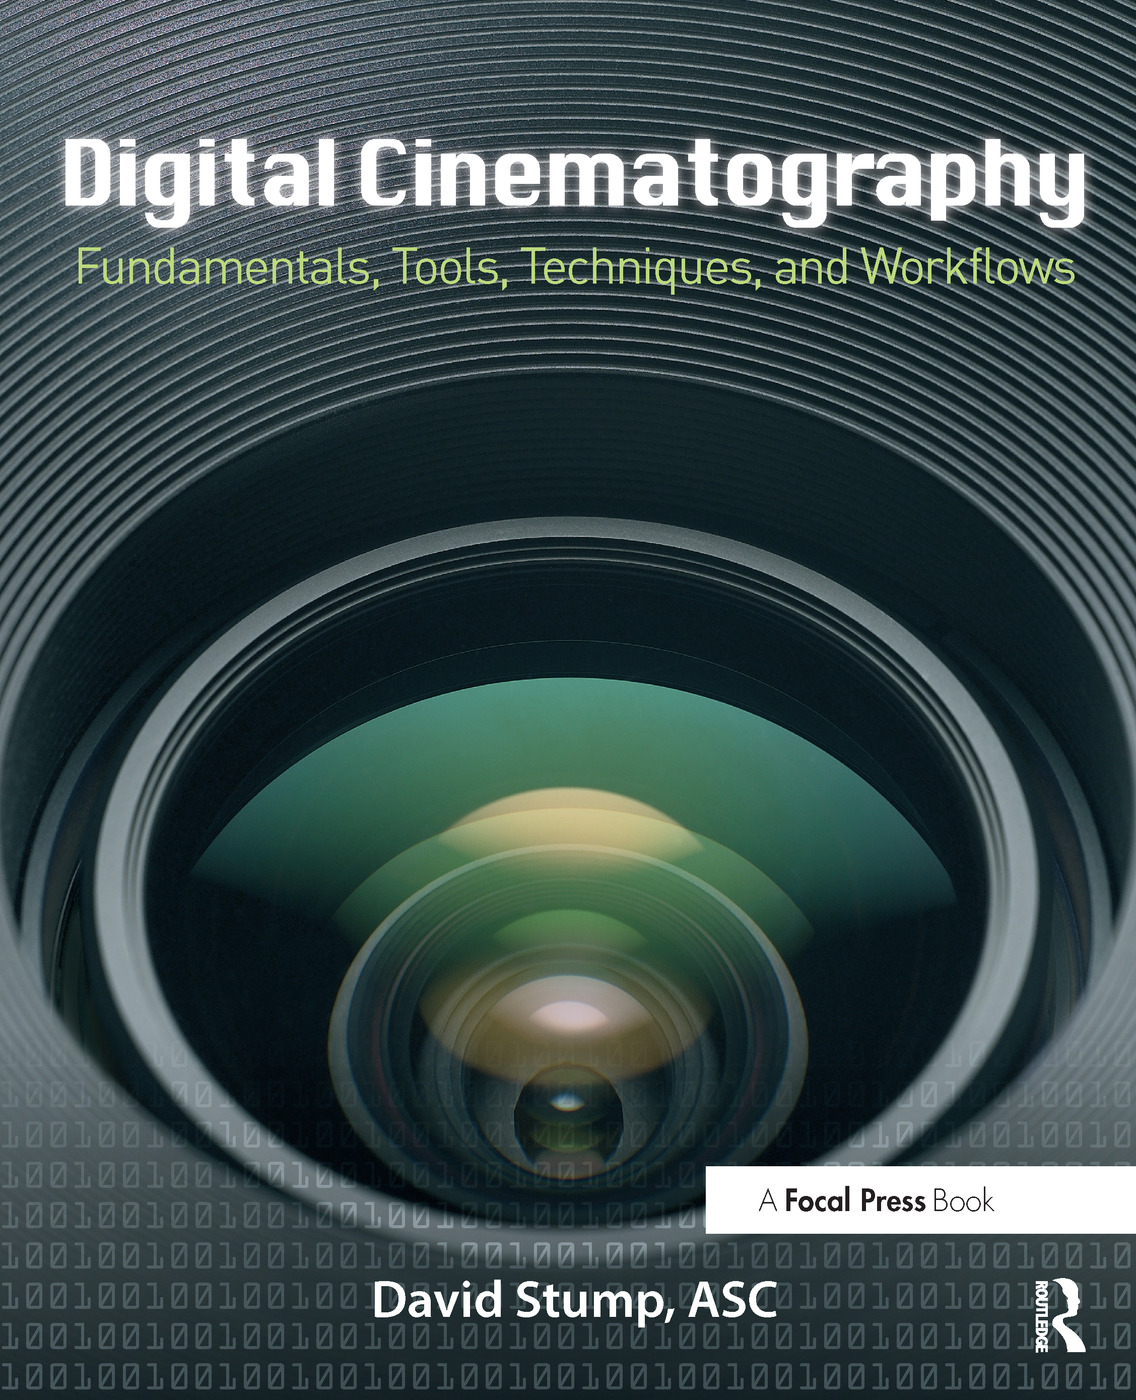 Digital Cinematography: Fundamentals, Tools, Techniques, and Workflows book cover